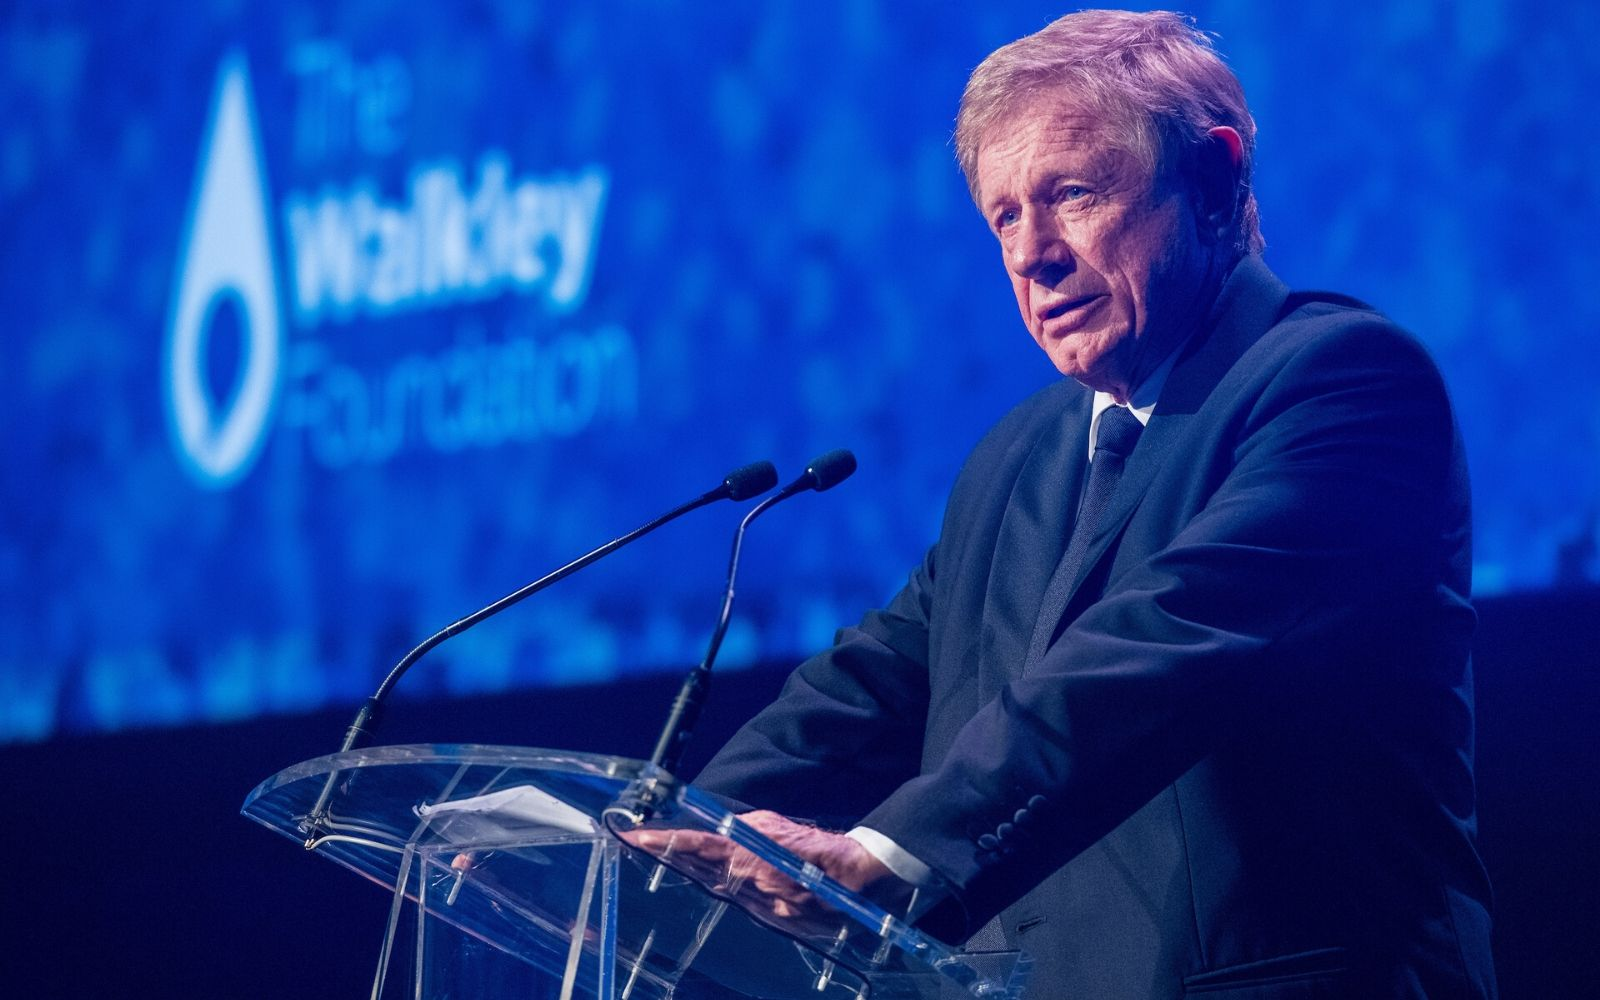 Kerry O'Brien's address to the 2019 Walkley Awards